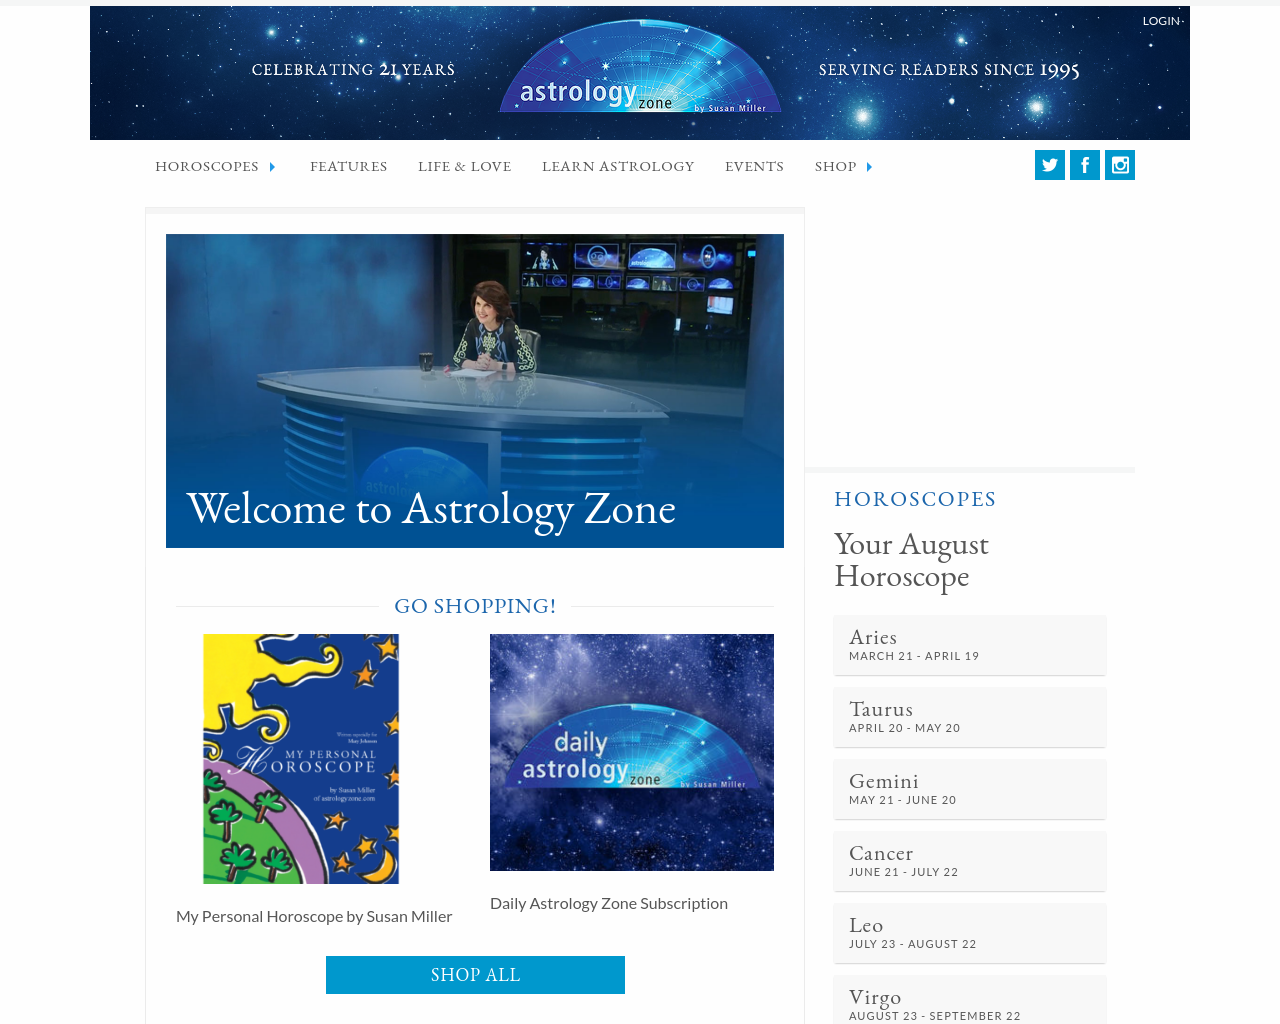 Astrology-Zone-By-Susan-Miller-Advertising-Reviews-Pricing